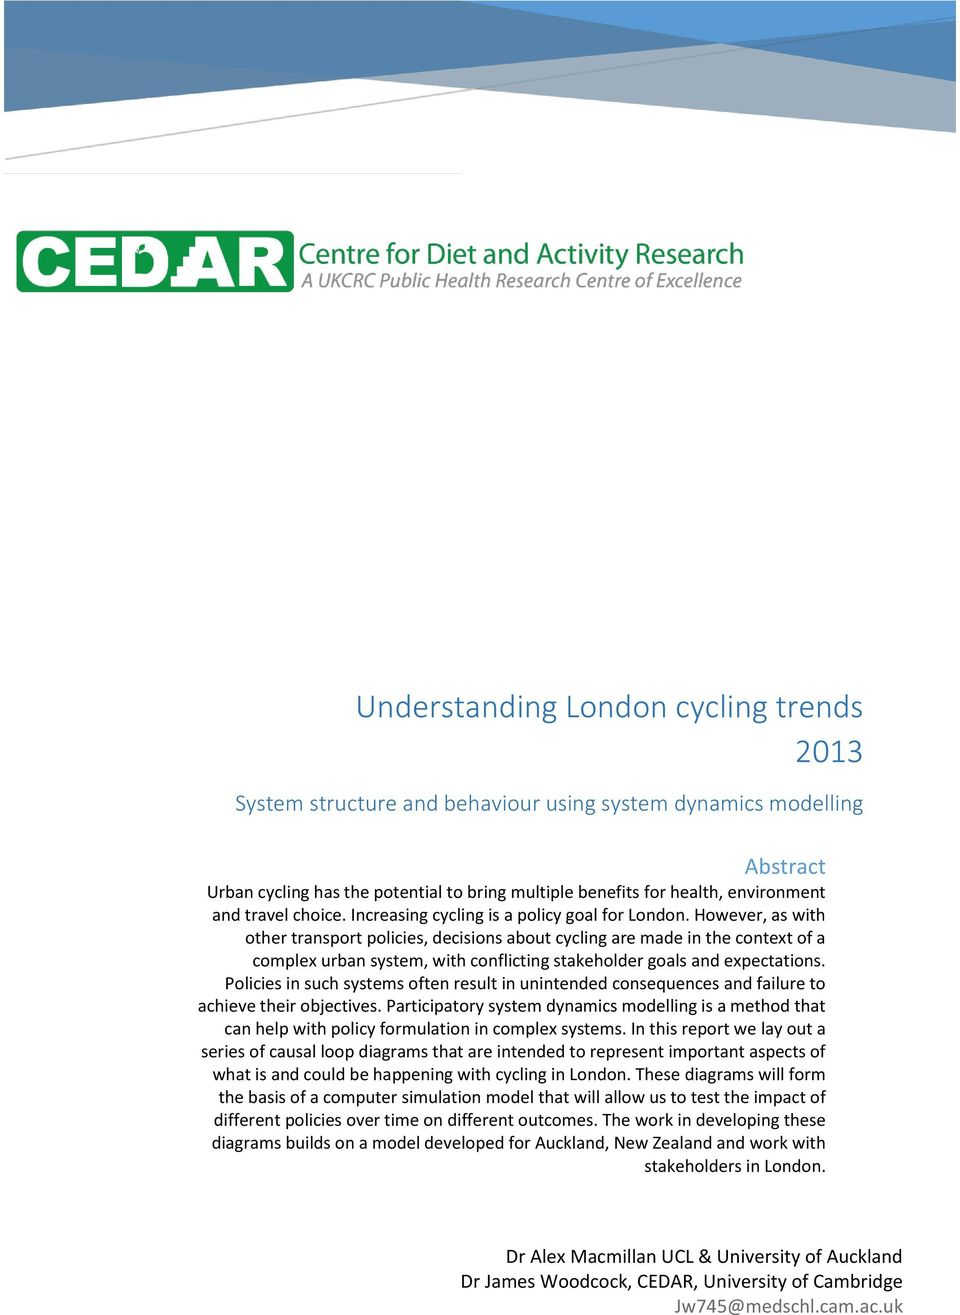 However, as with other transport policies, decisions about cycling are made in the context of a complex urban system, with conflicting stakeholder goals and expectations.